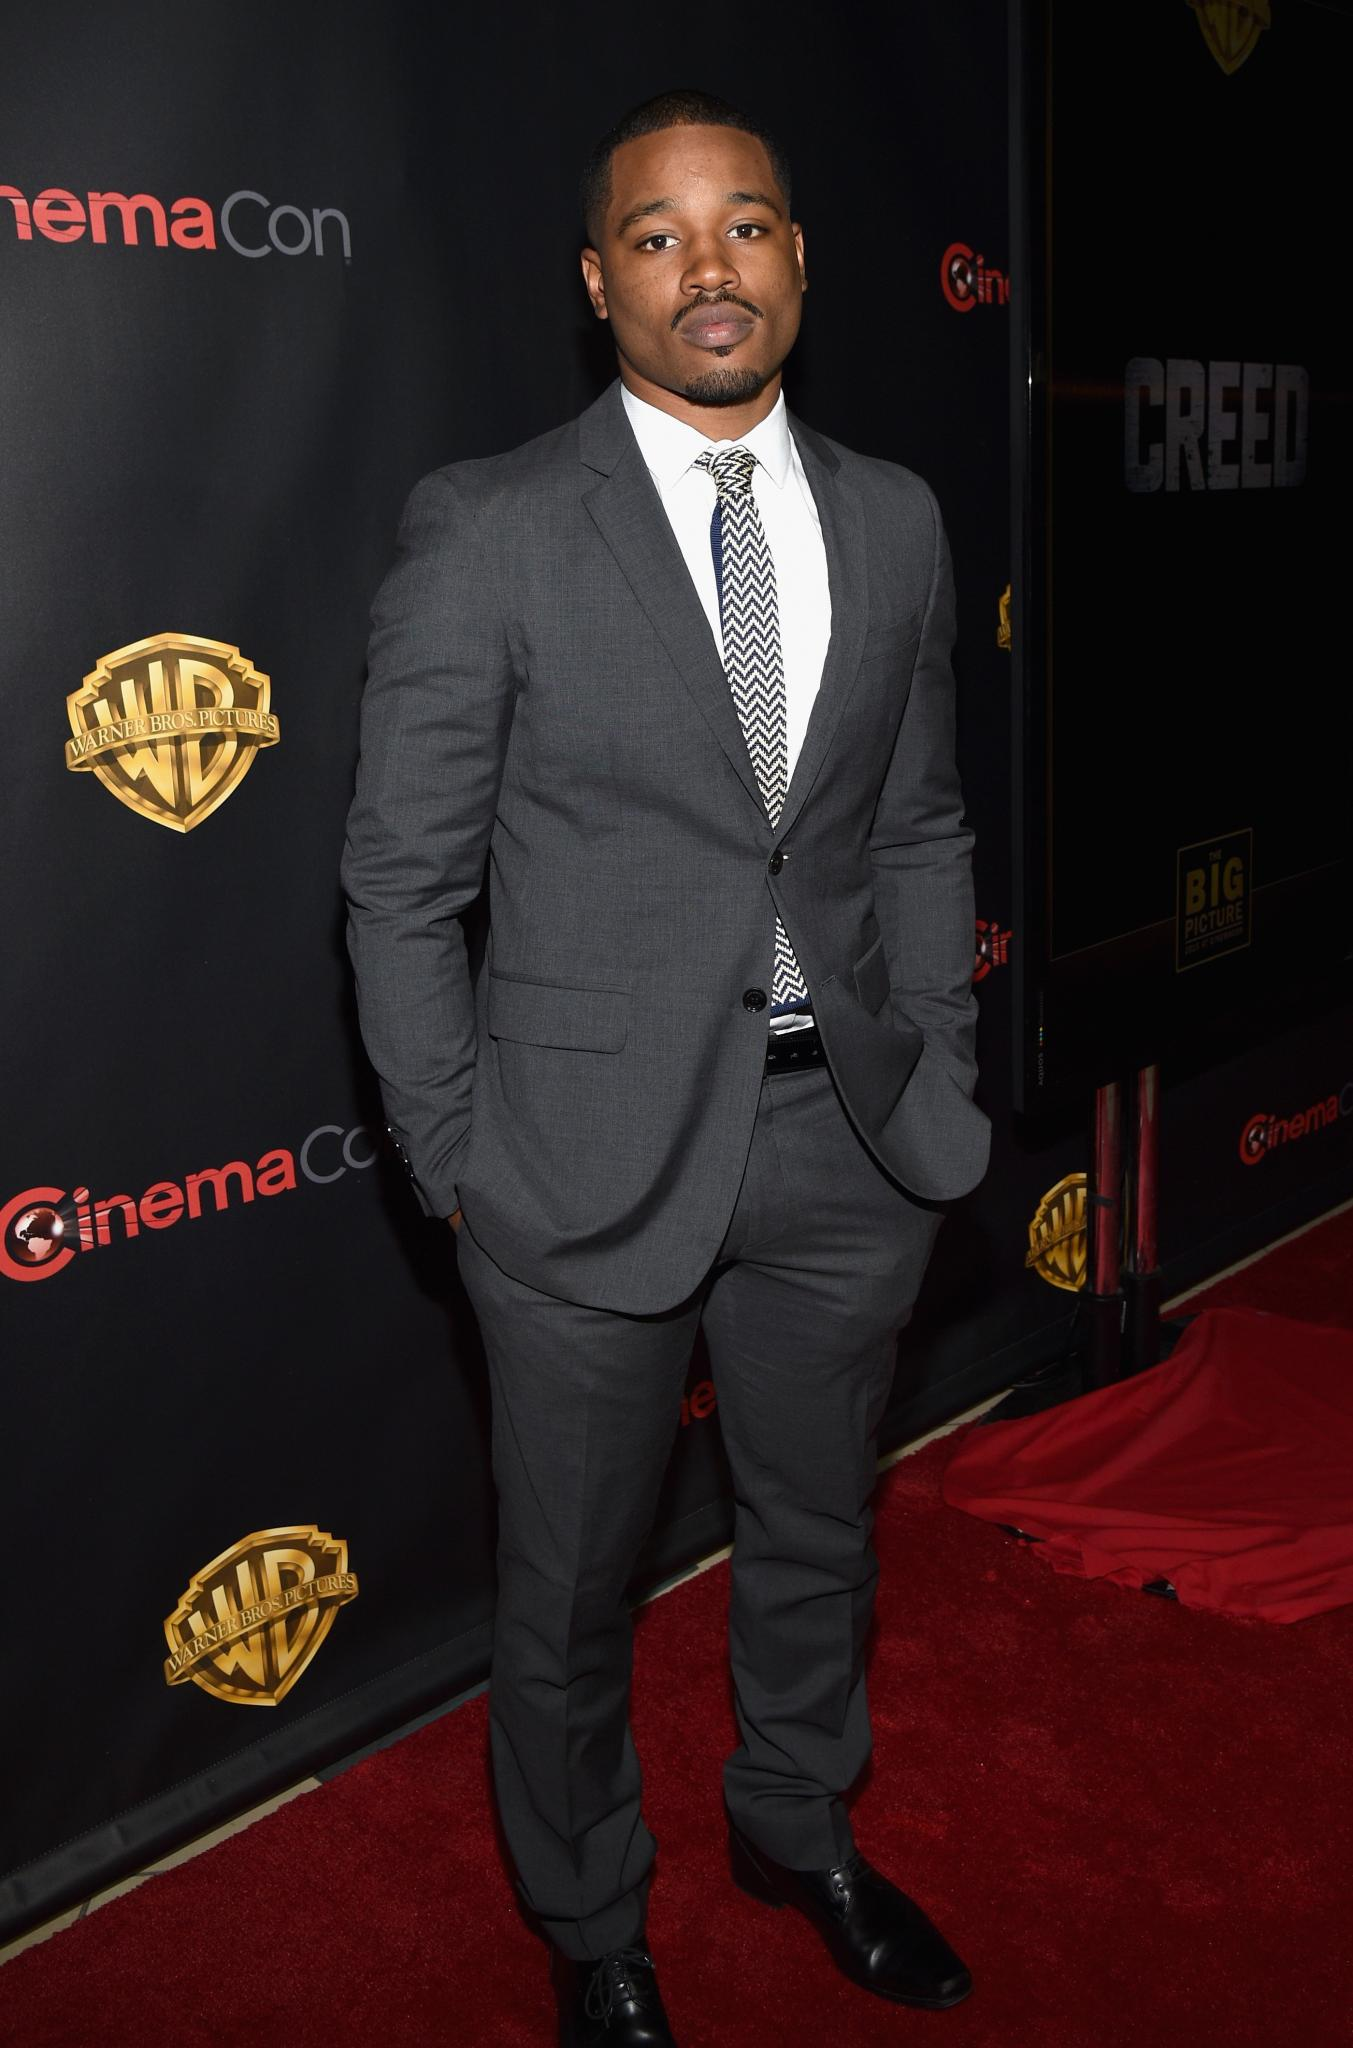 Director Ryan Coogler Delivers Another Knockout with 'Creed'